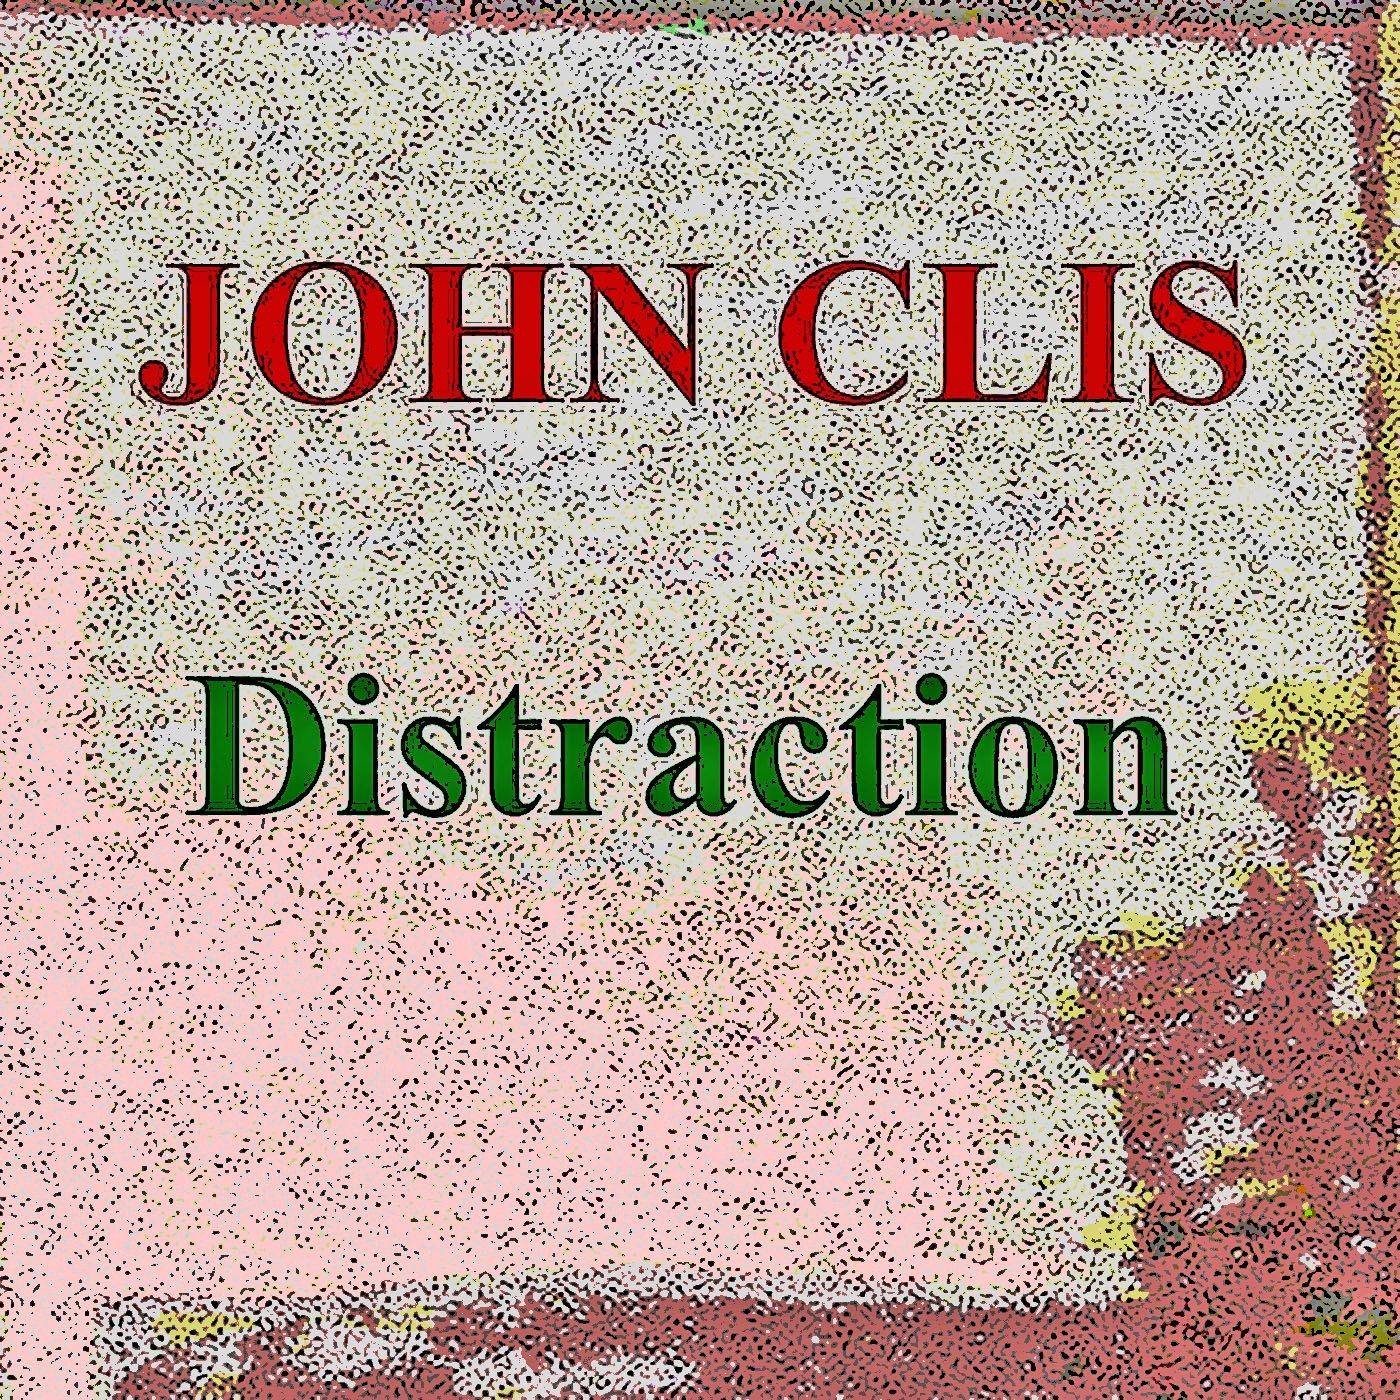 https://0201.nccdn.net/1_2/000/000/097/a77/John-Clis---Distraction---Picture-1-1400x1400.jpg